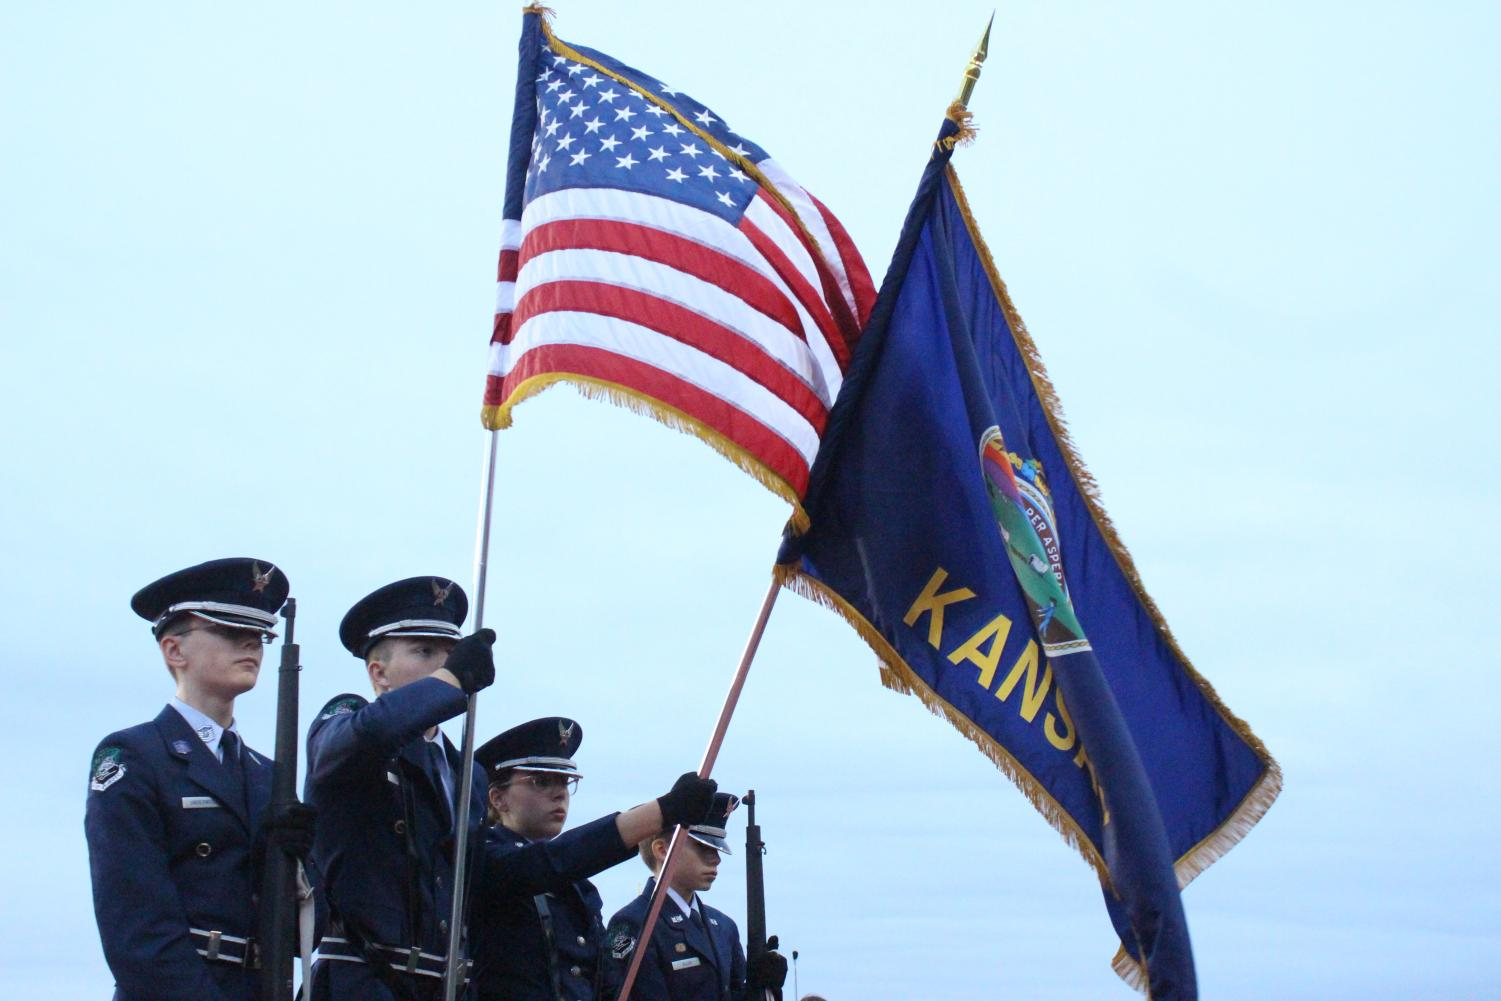 AFJROTC+color+guard+members+Stockton+Underwood+%28left%29%2C+Connor+Grosso%2C++Natalie+Knowles+and+Charles+Allen+present+the+colors+before+the+game+starts.